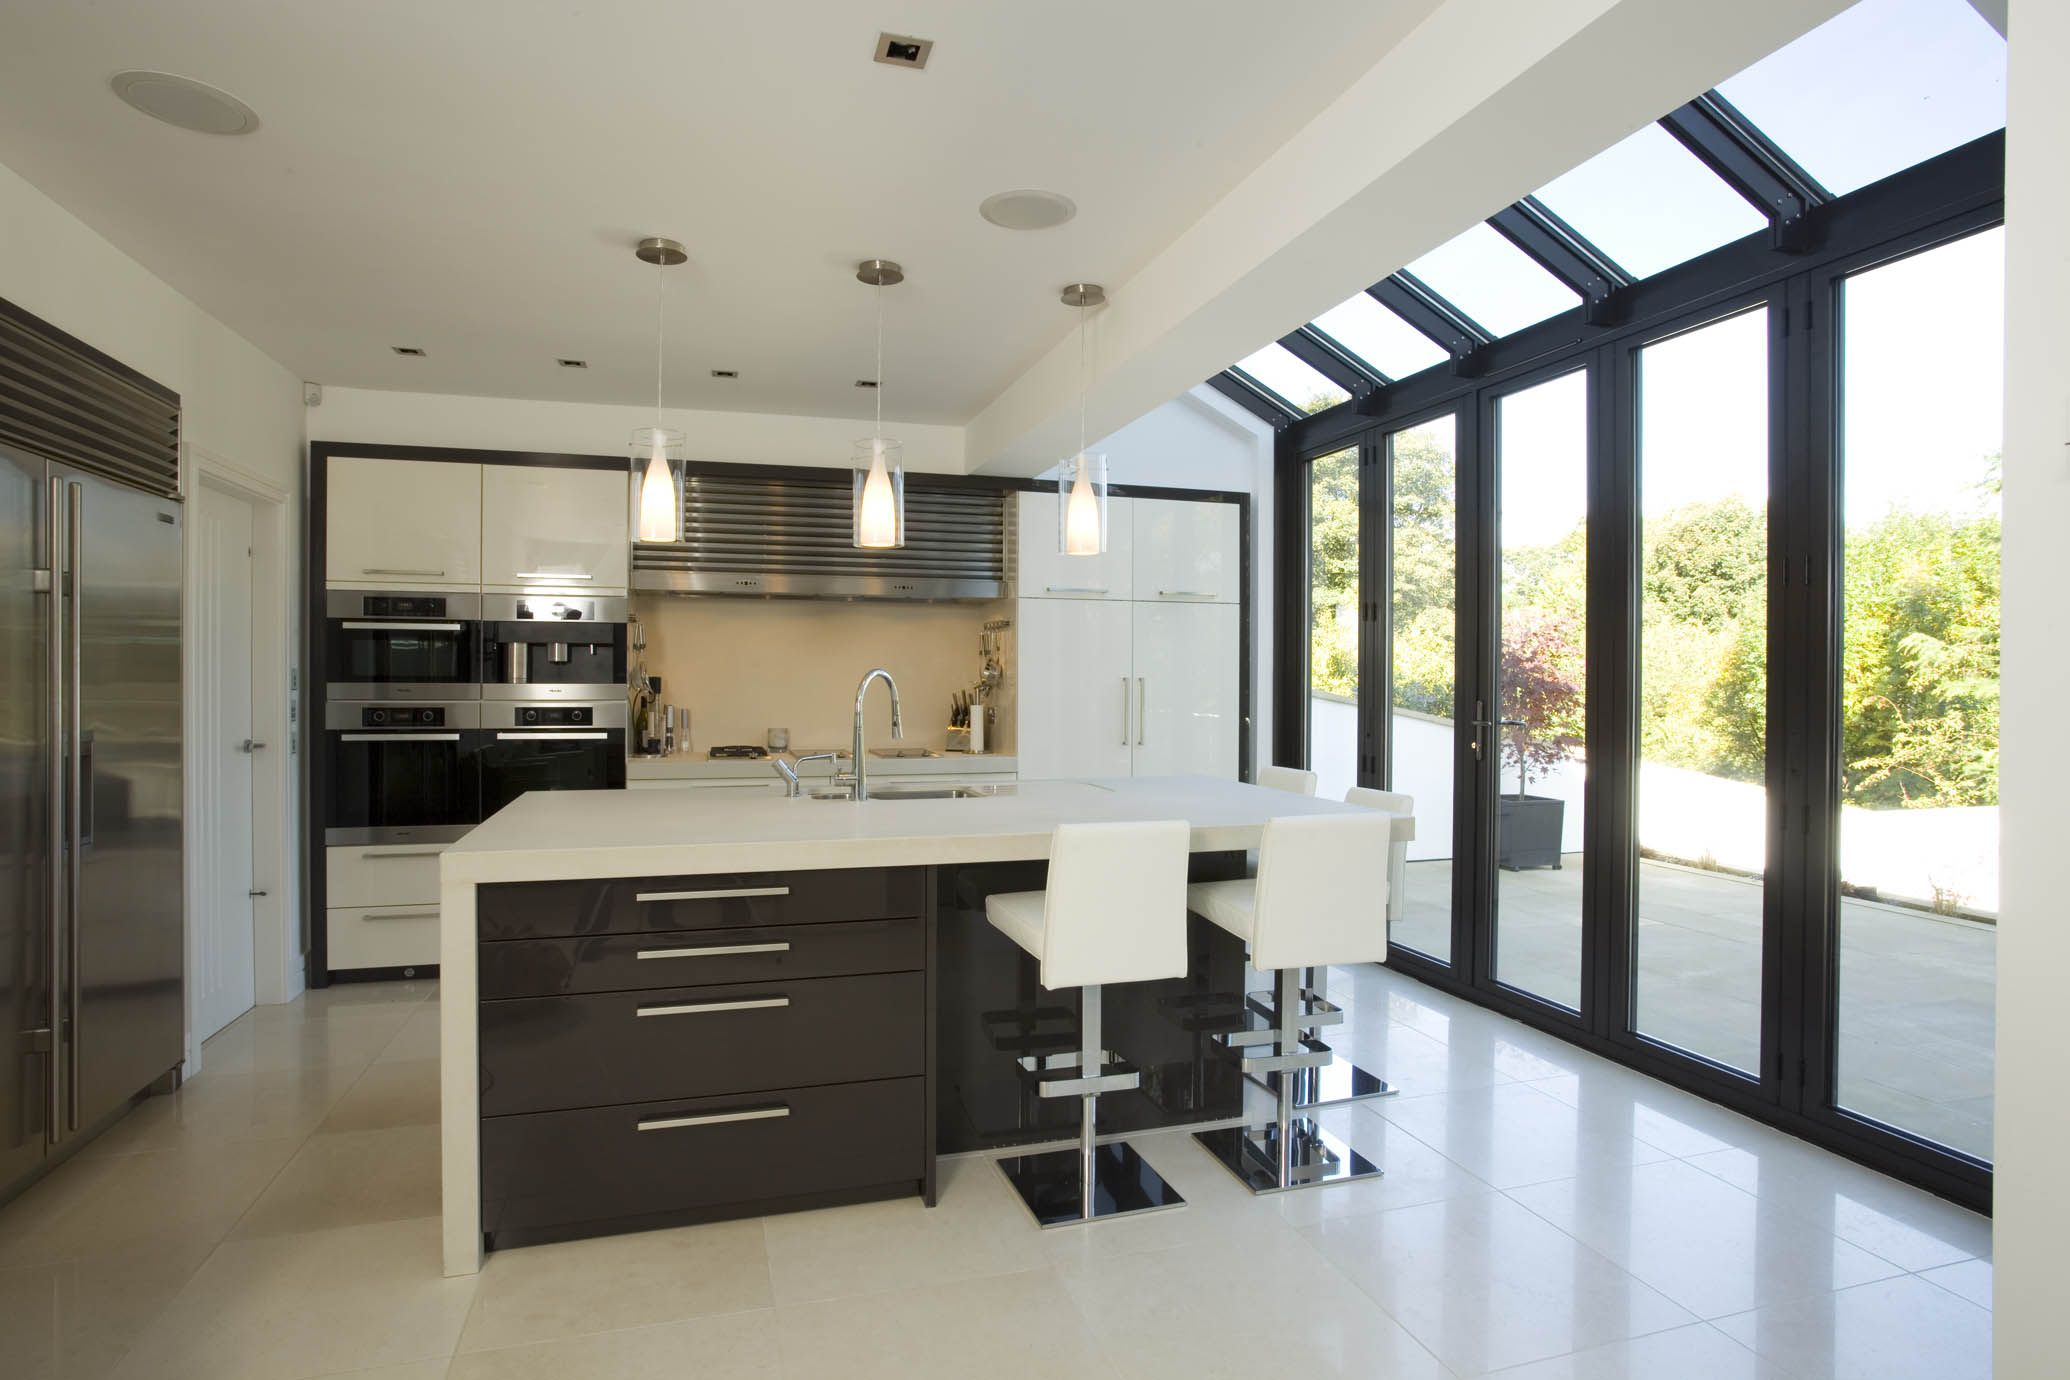 Kitchen Kitchen Conservatory Minimalist Elegant Concept Best Meal ...